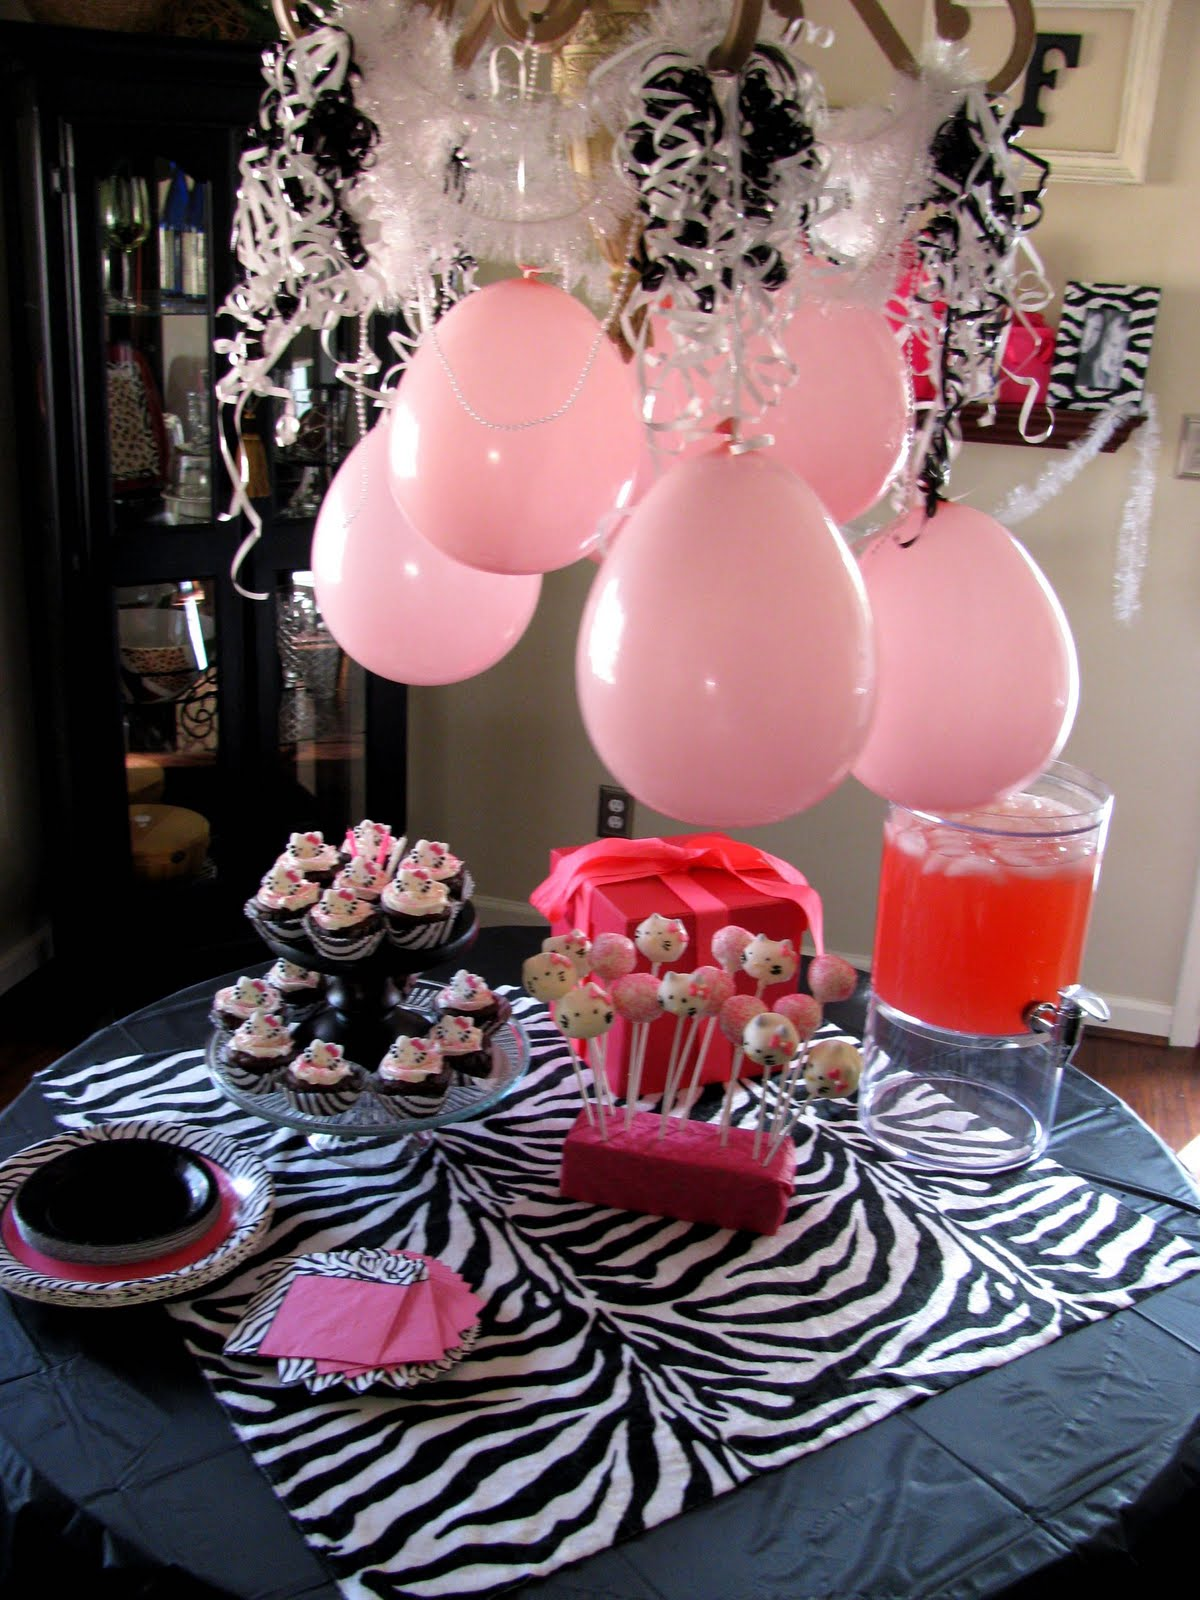 Our creative life a hello kitty birthday party not just for Animal print party decoration ideas